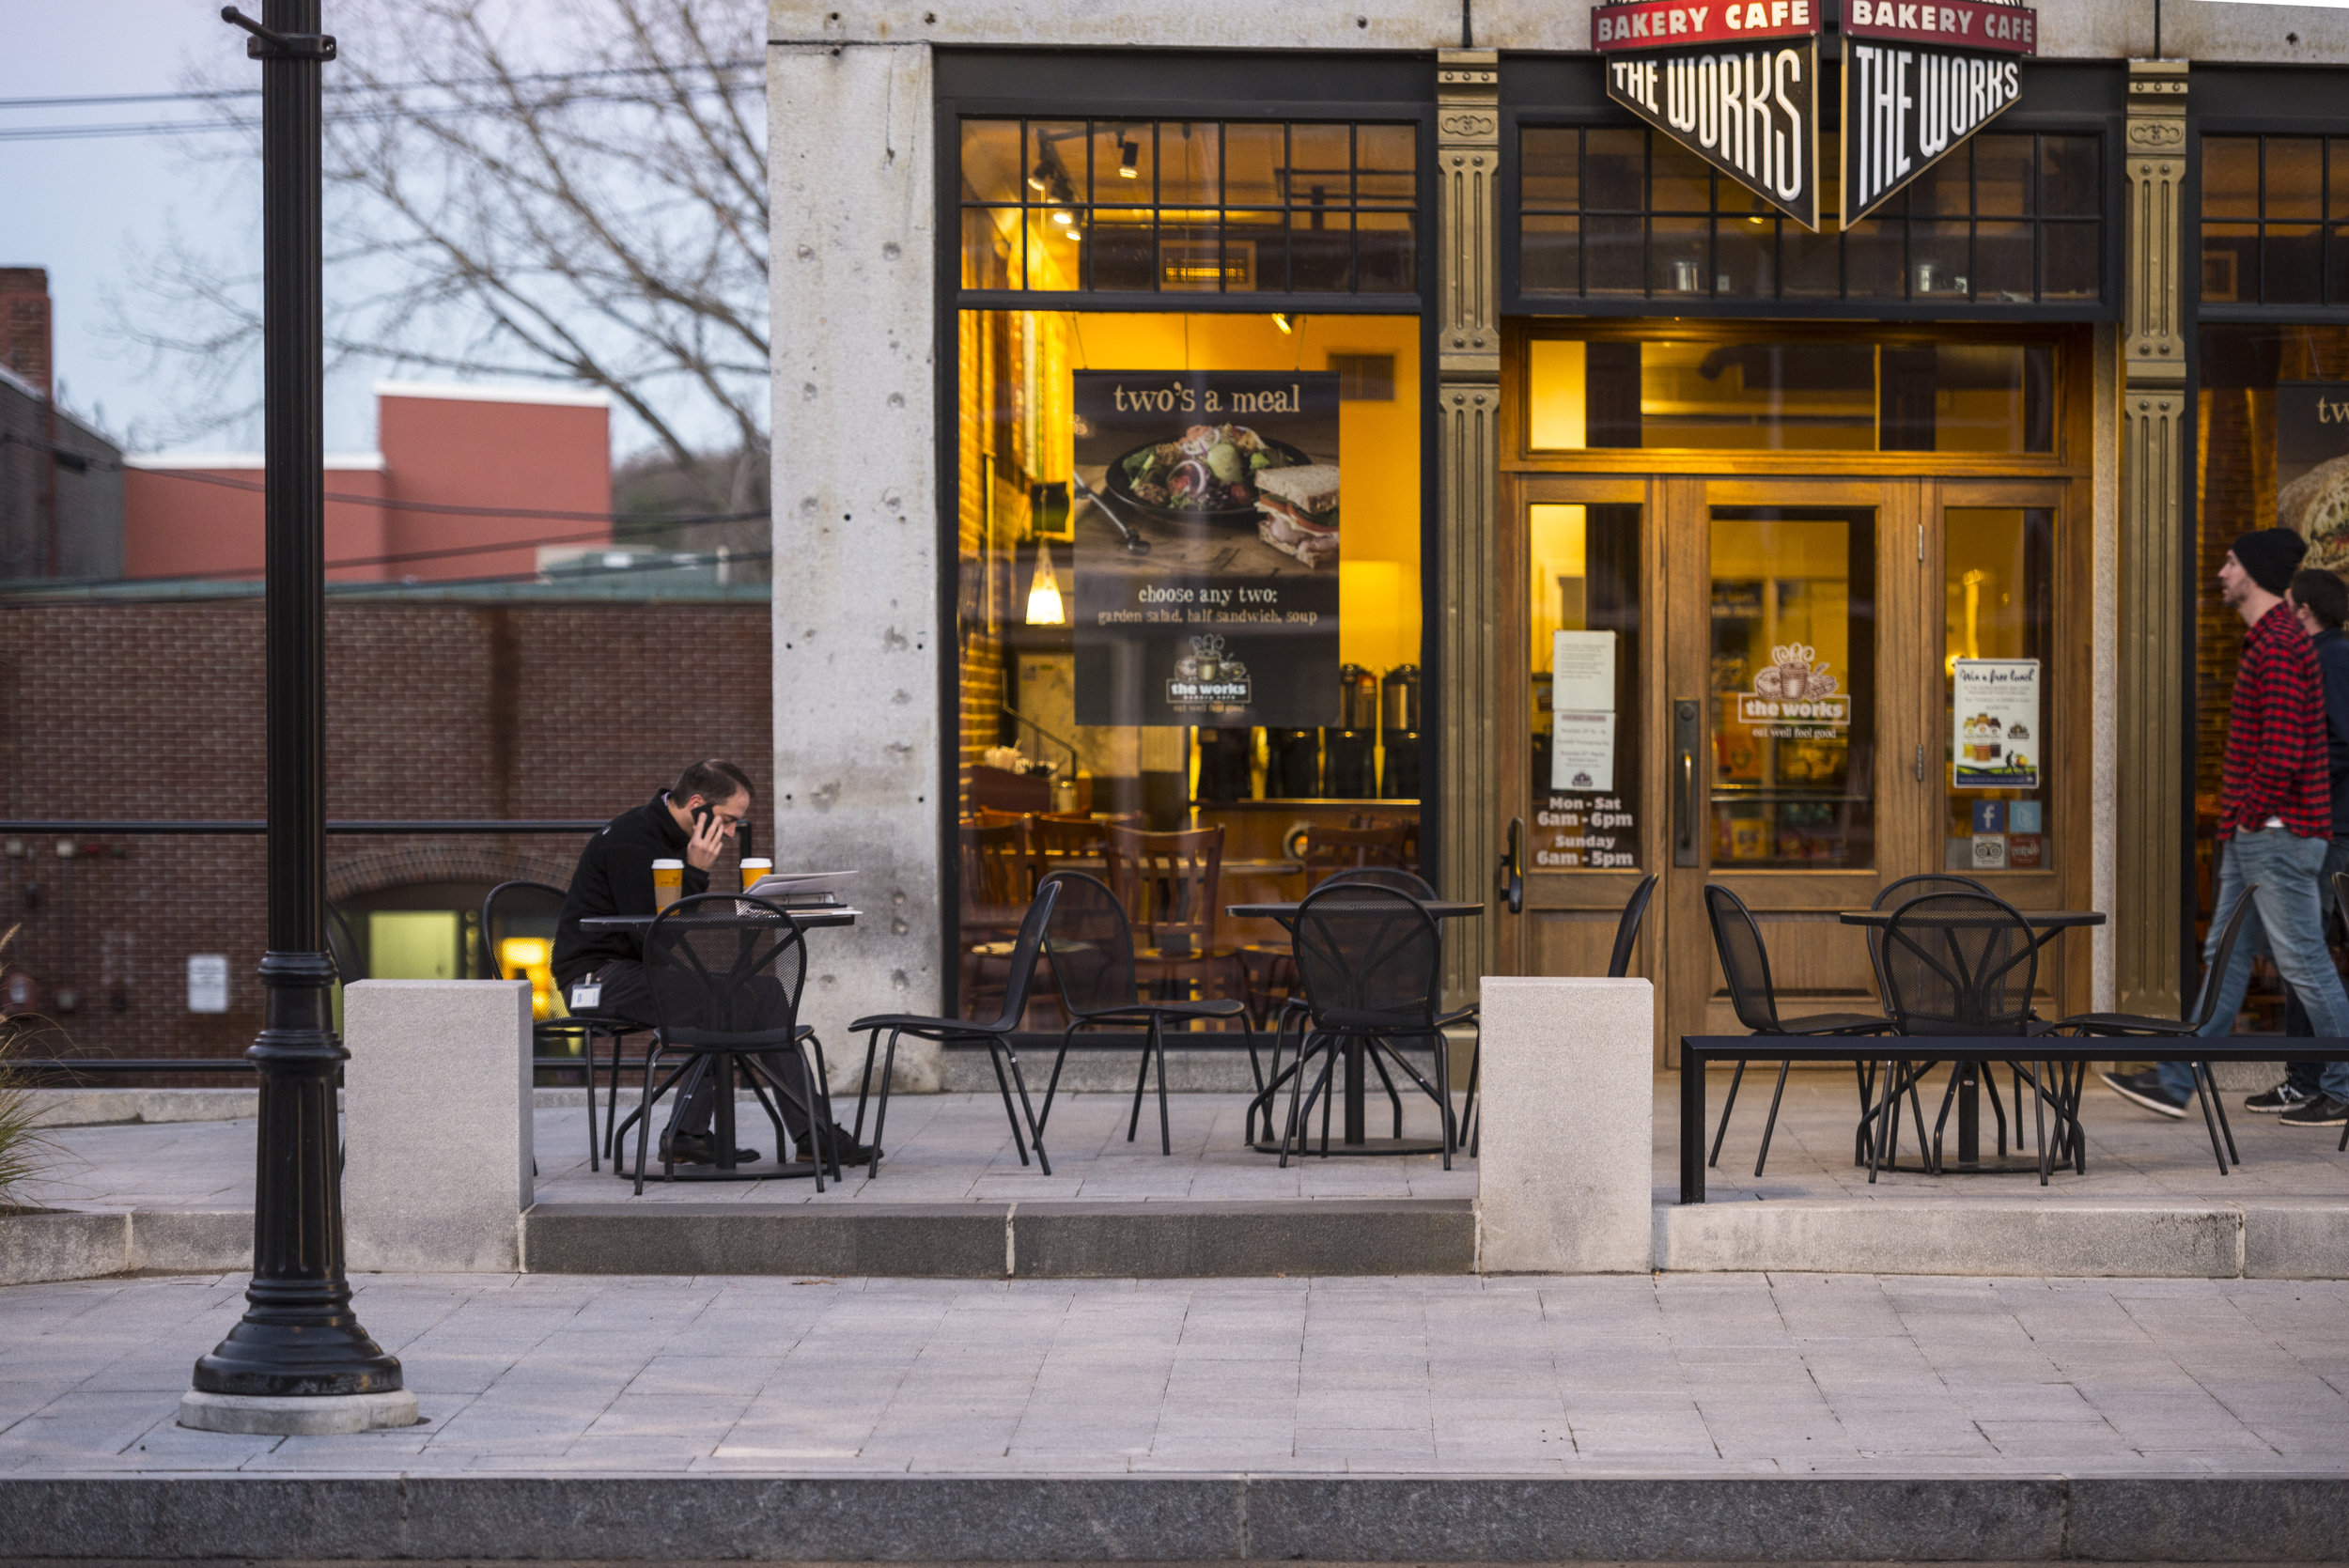 Downtown Concord is where our placement sites are located, with restaurants, Pubs, cultural attractions and unique shops (Photo COurtesy of the Concord Main Street Project)